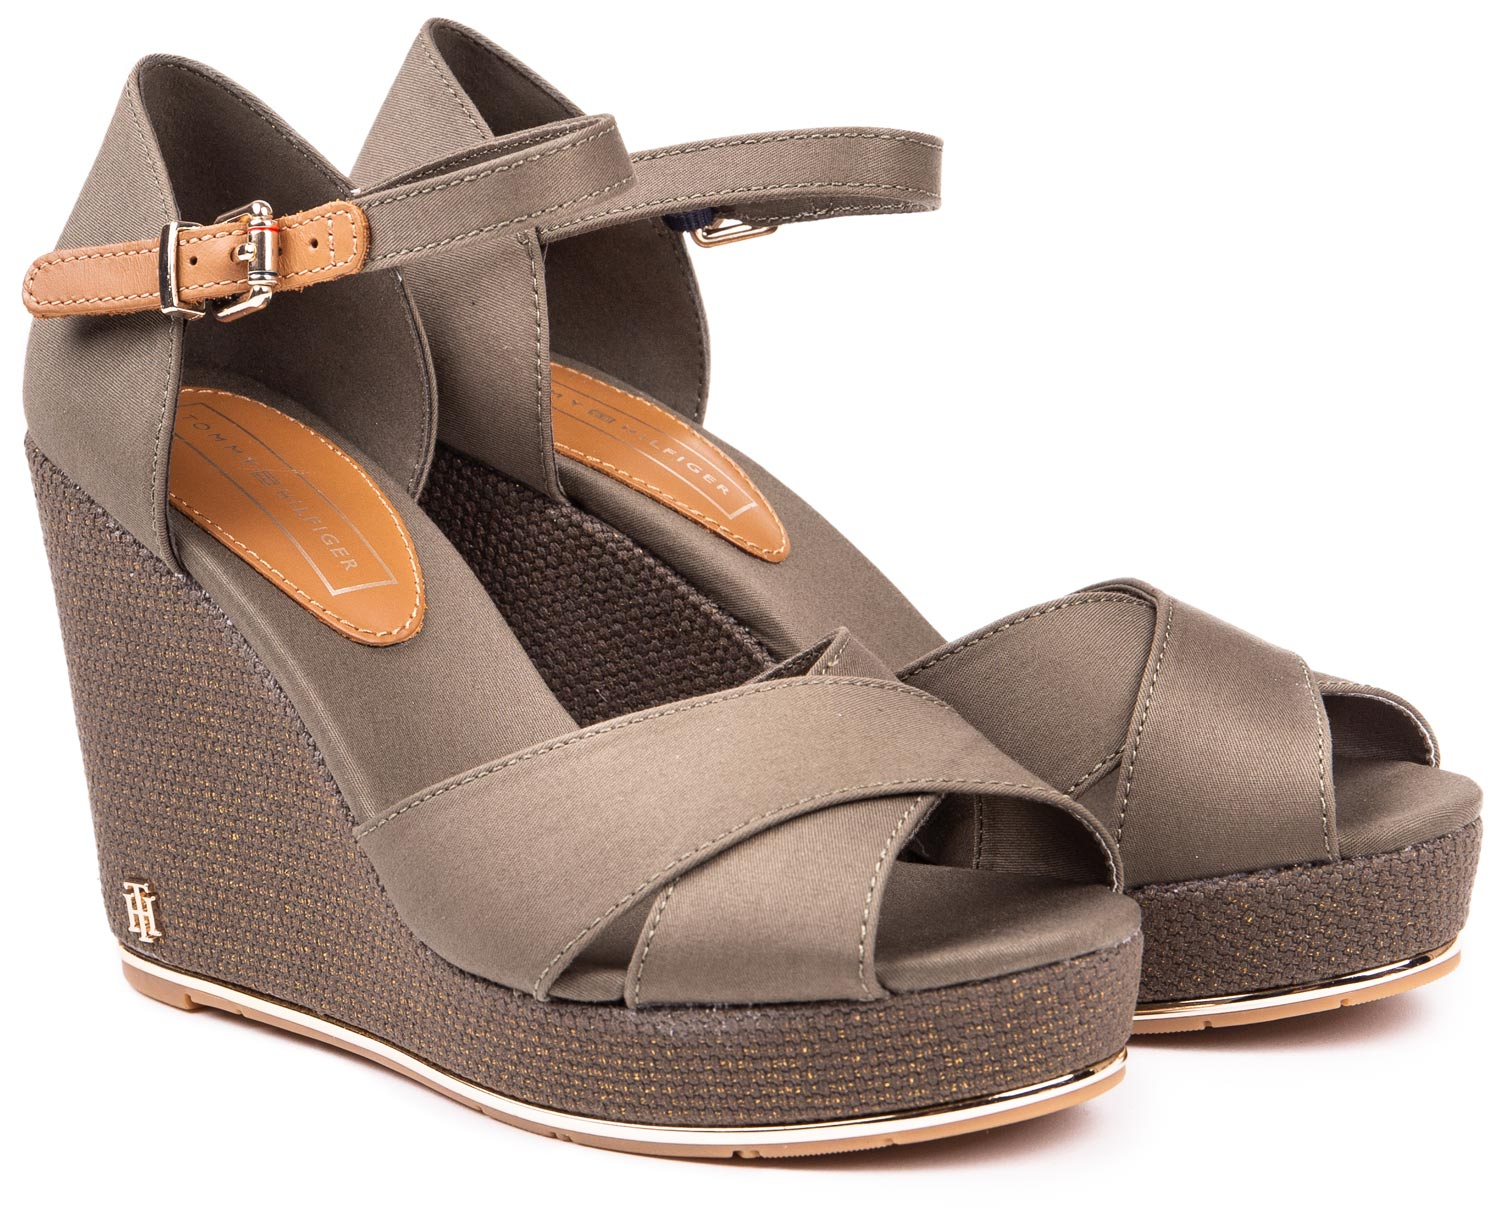 Tommy Hilfiger green shoes on a wedge Feminine Wedge Sandal Baci Dusty Olive